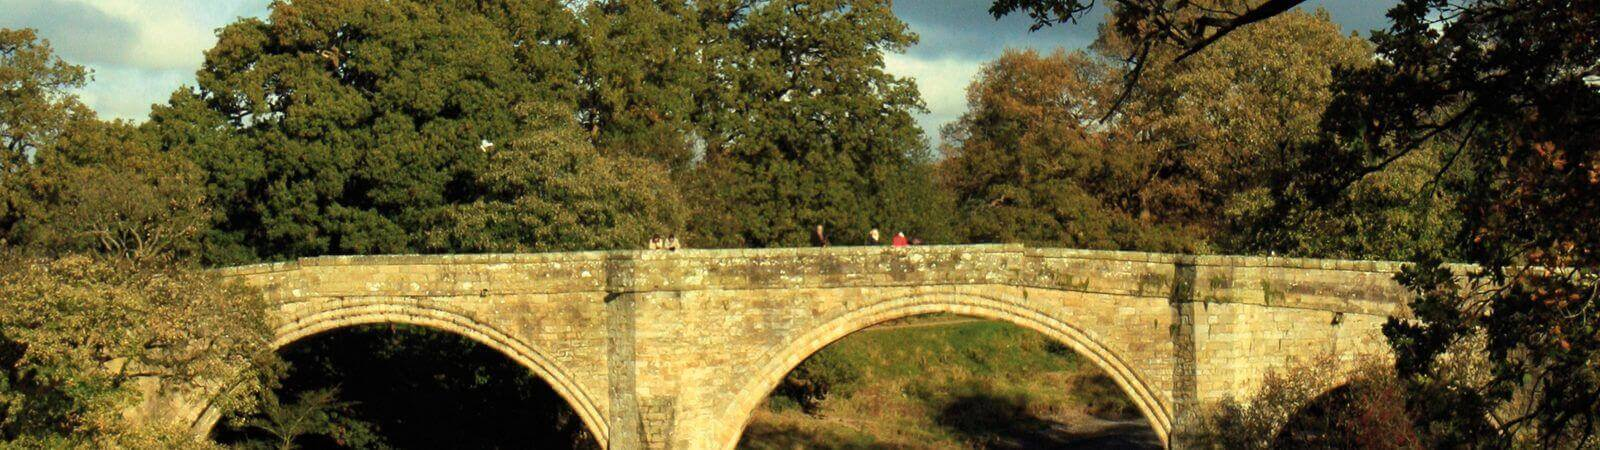 Kirkby Lonsdale, Cumbria